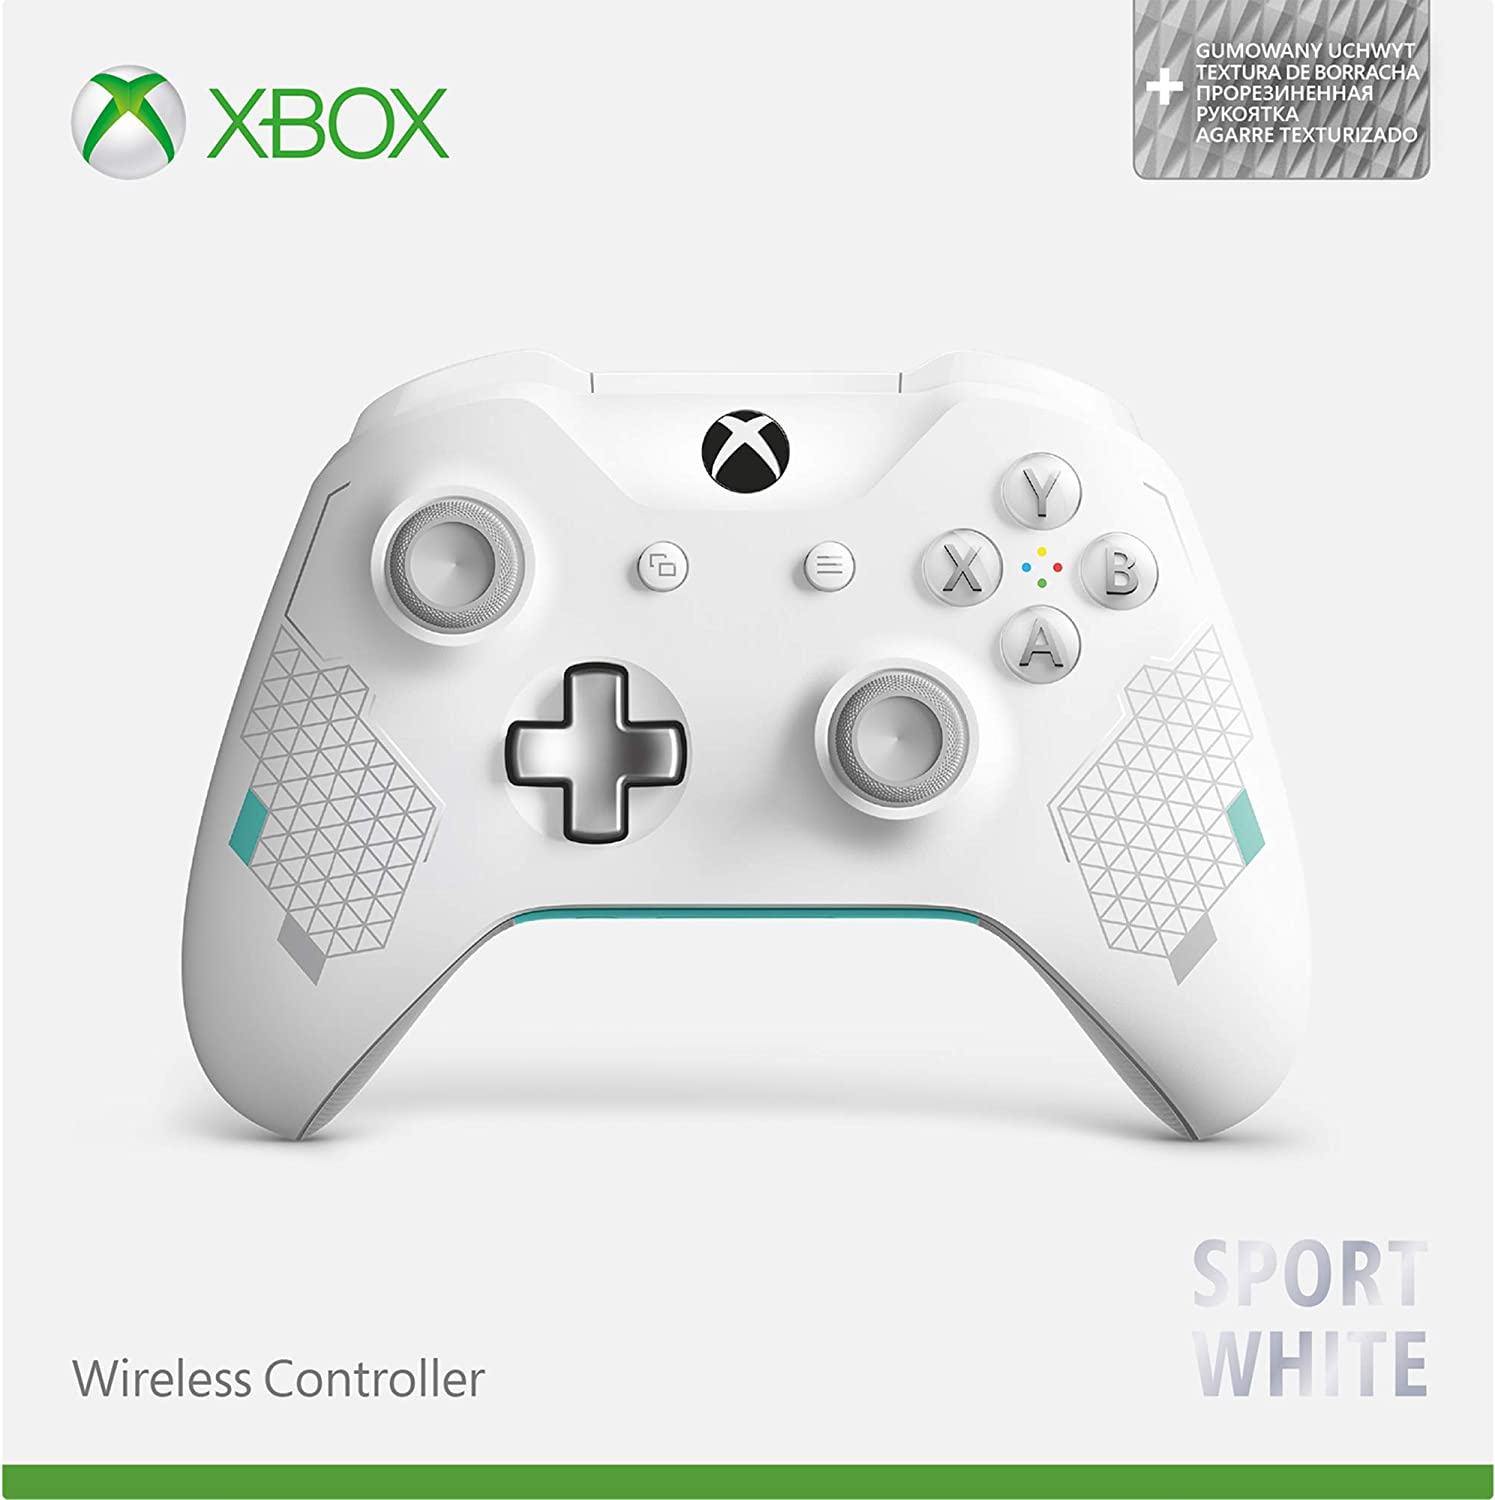 Amazon com: Xbox Wireless Controller - Sport White Special